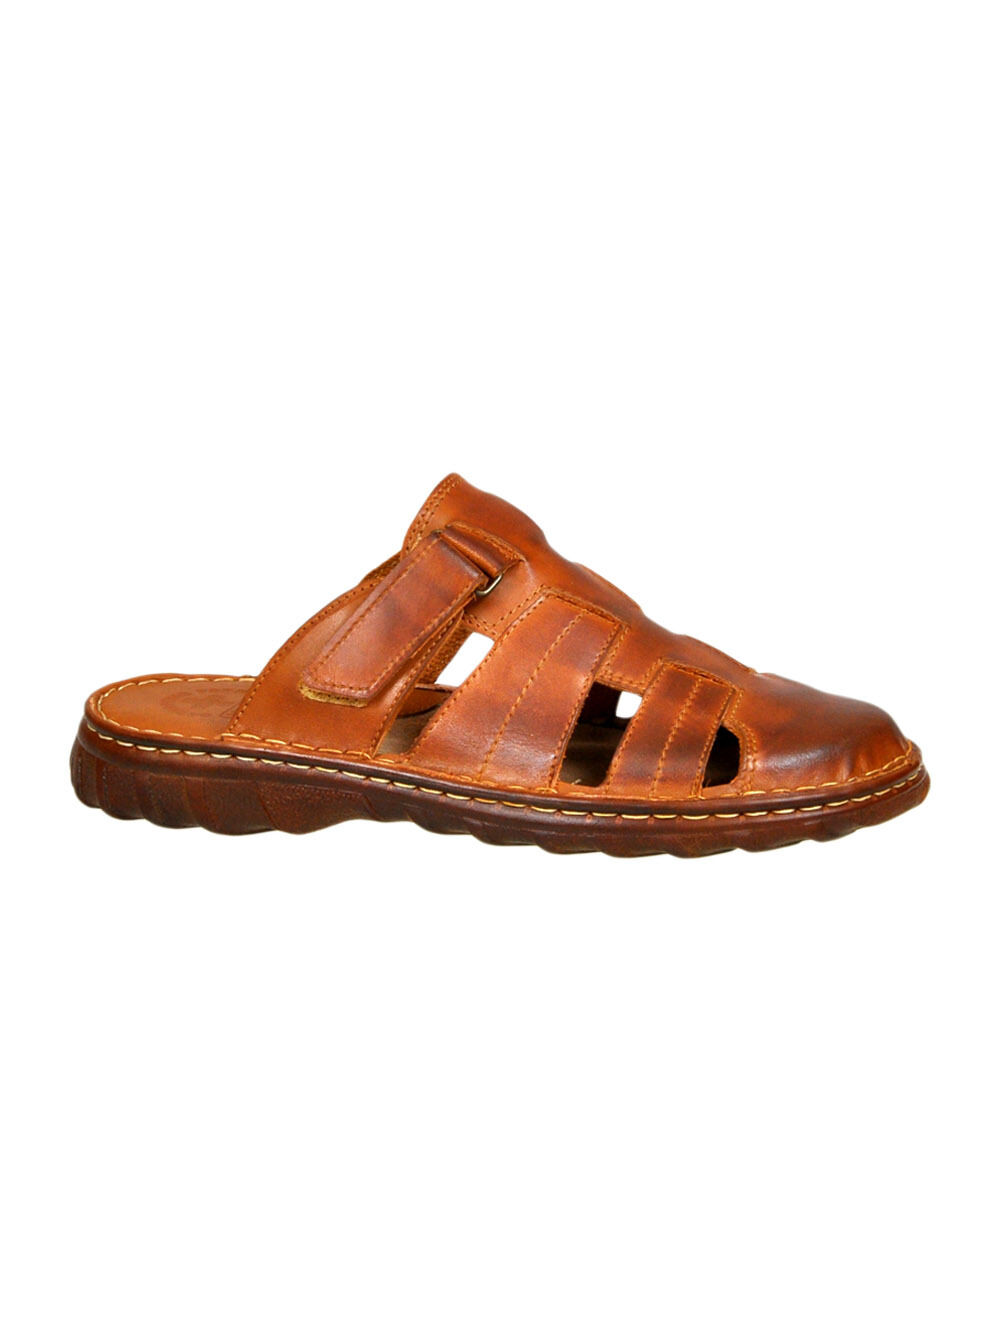 Comfortable Mens Natural Buffalo Leather Orthopedic Form Sandals Model-877